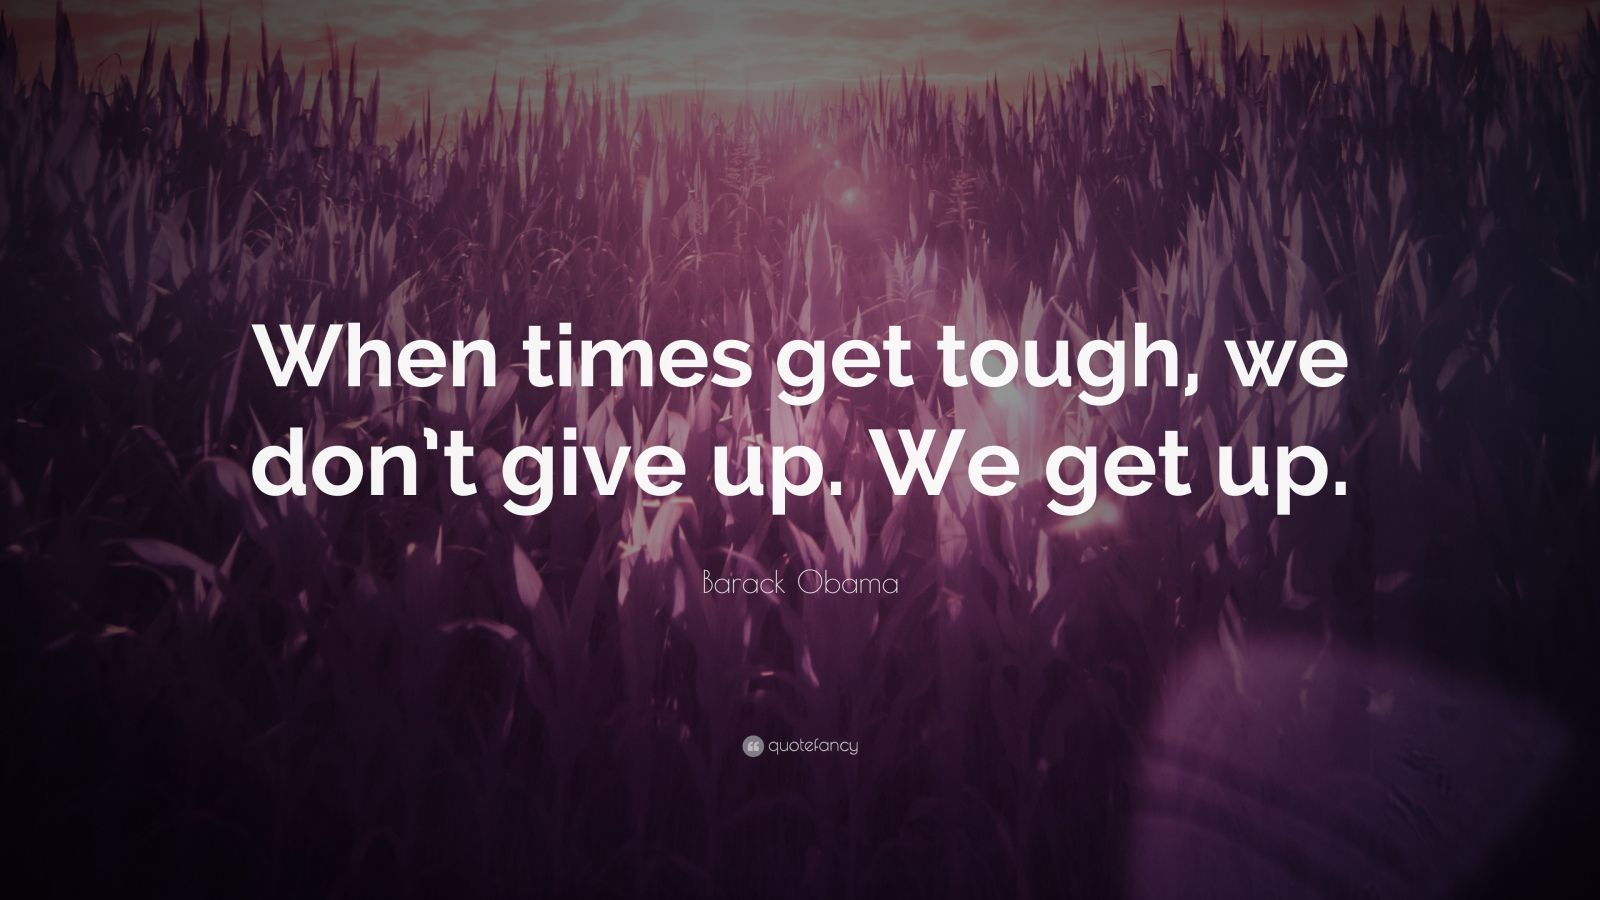 """Barack Obama Quote: """"When times get tough, we don't give up. We get up."""""""